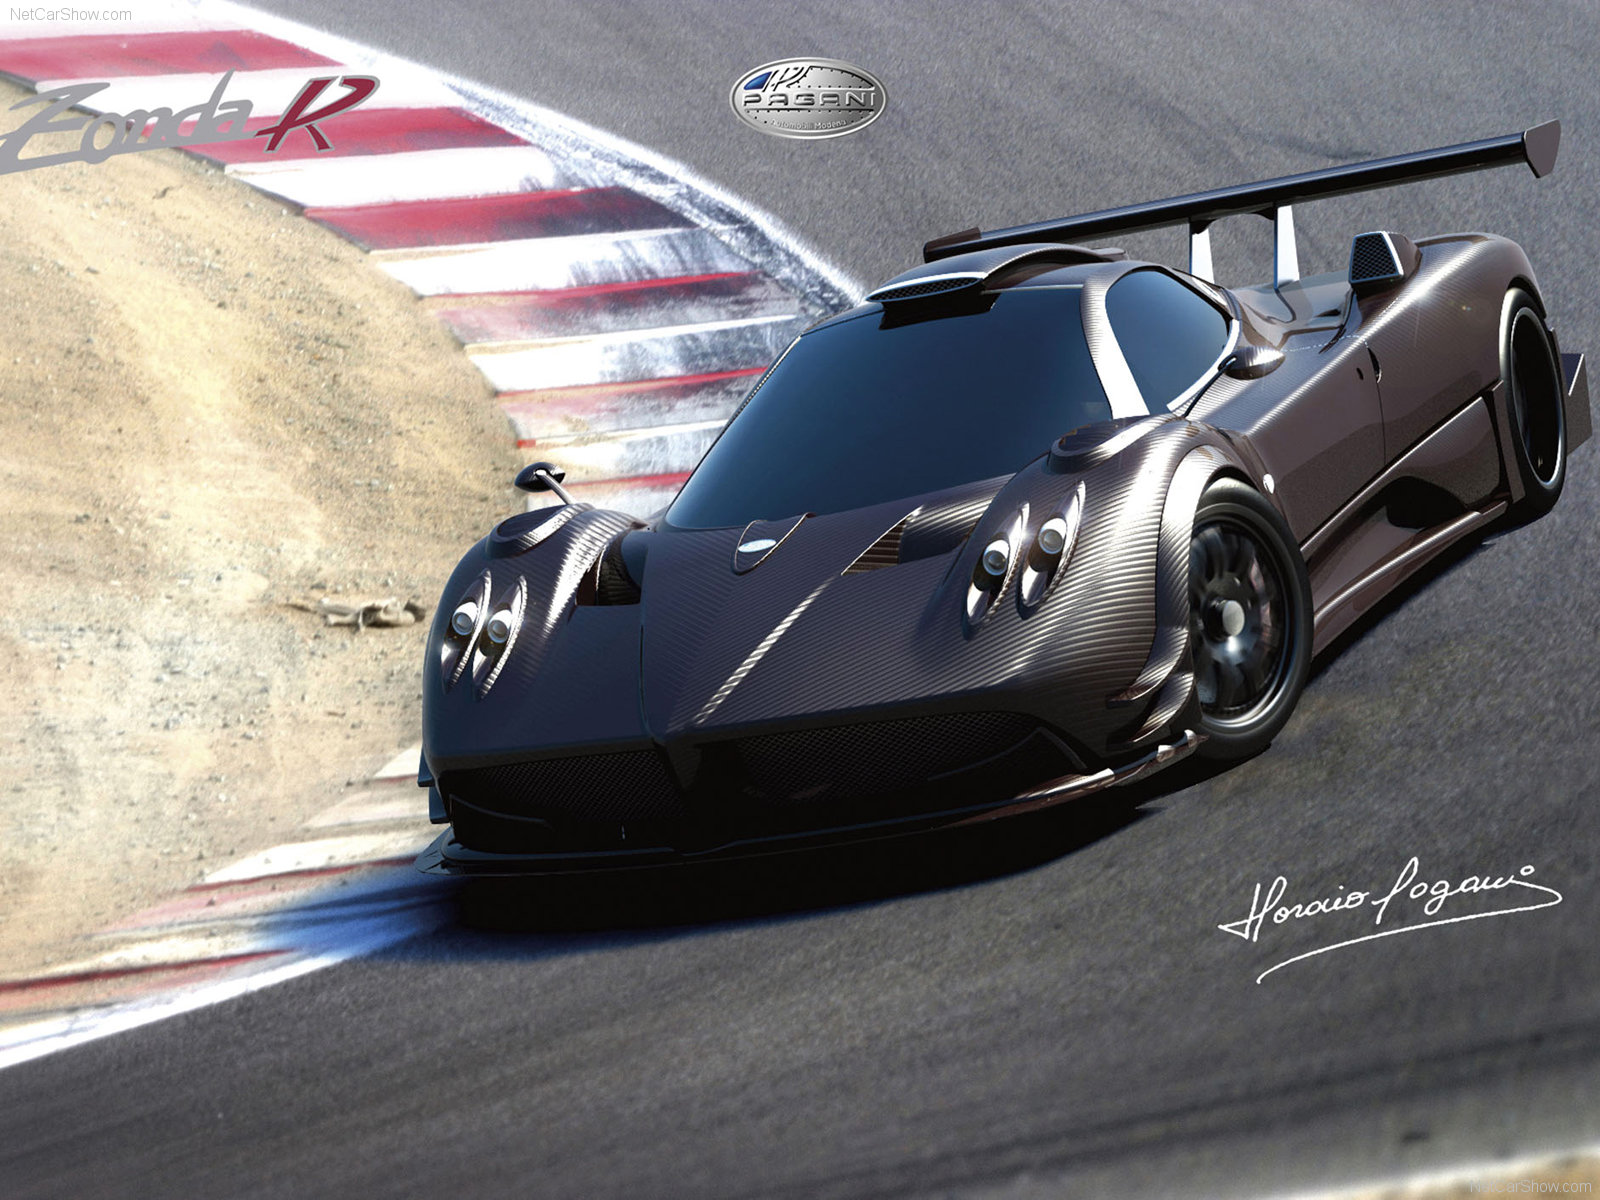 Pagani-car-wallpaper-wp421290-1